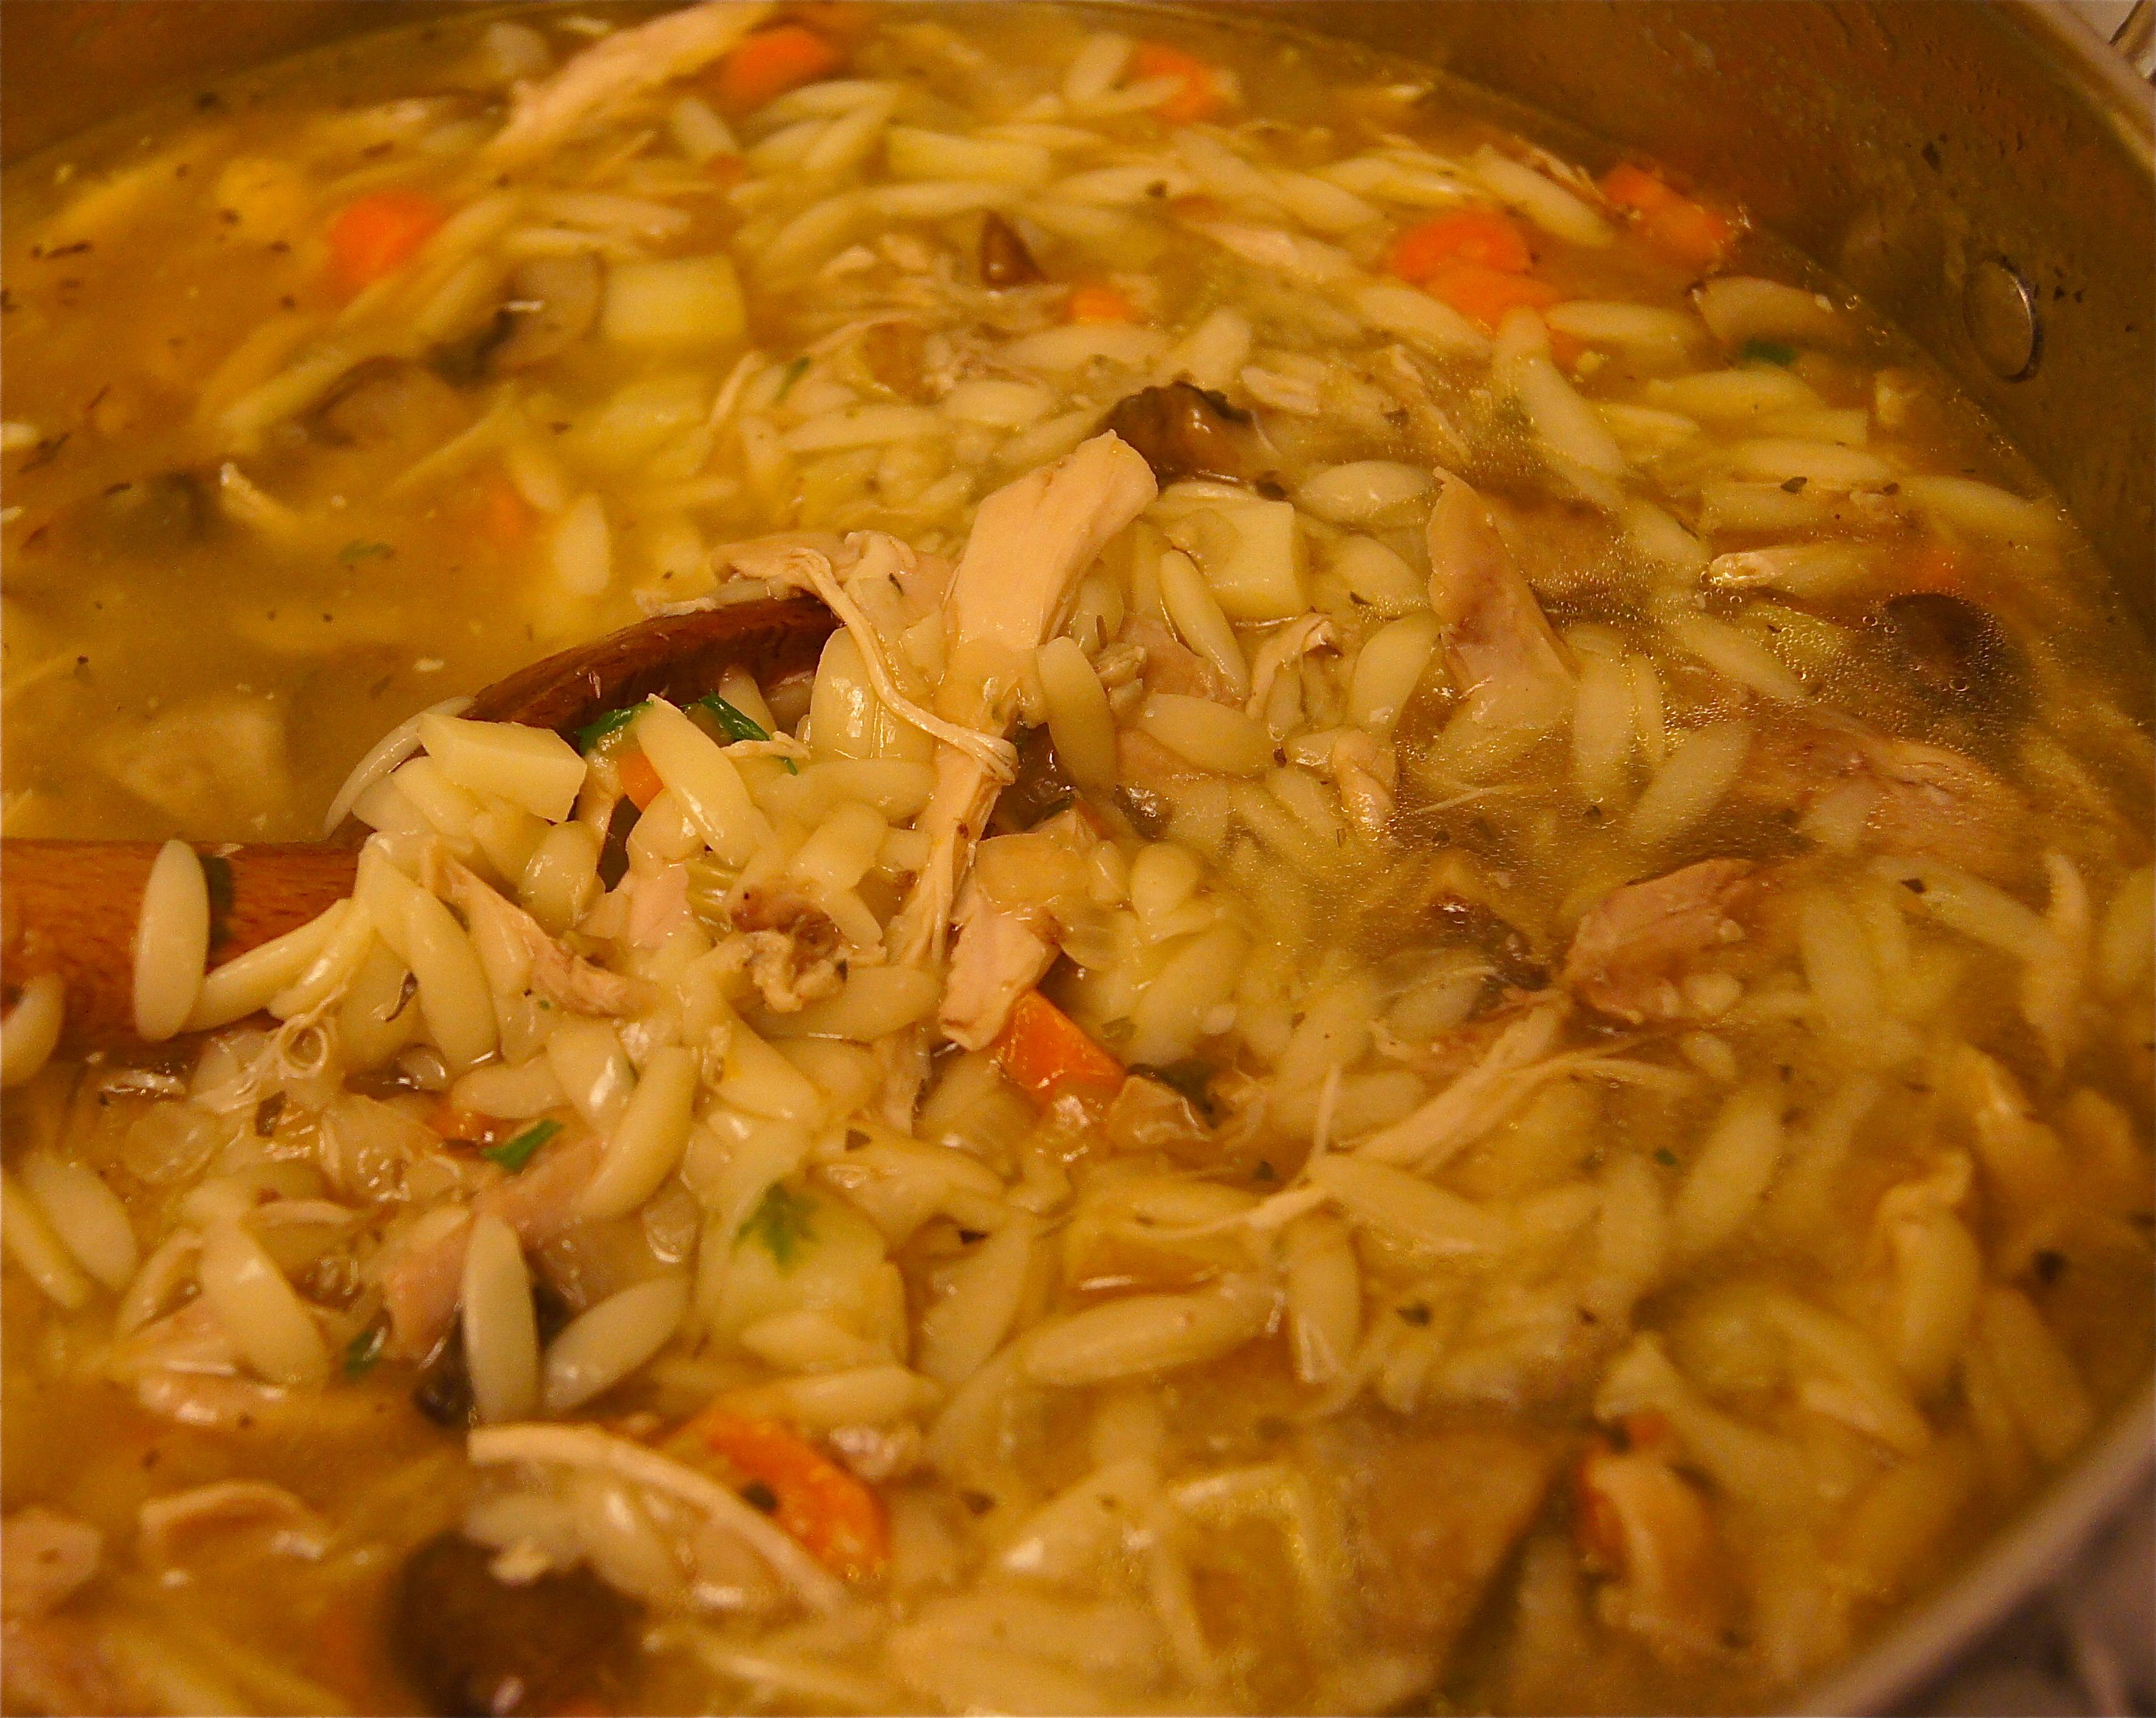 Can't wait to share this with friends.  Chicken orzo soup with crimini mushrooms.  I made the stock with smoked chicken bones to add dimension to the soup.